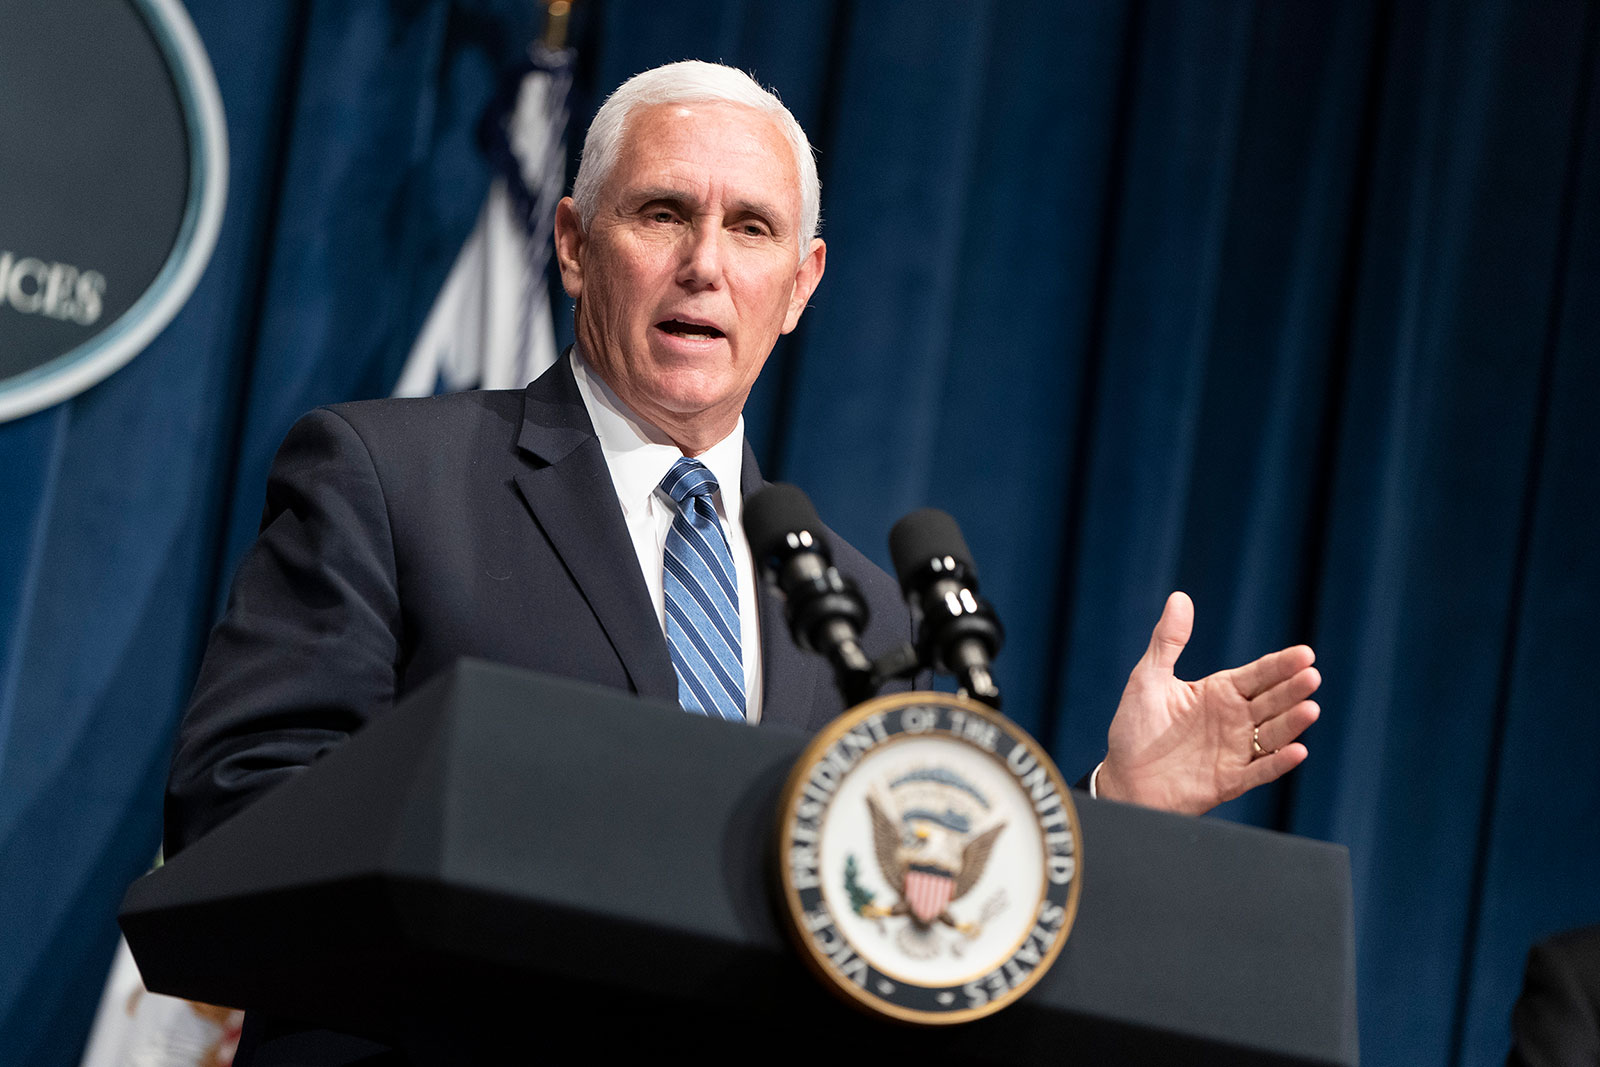 Vice President Mike Pence speaks during a coronavirus task force briefing in Washington, DC, on June 26.